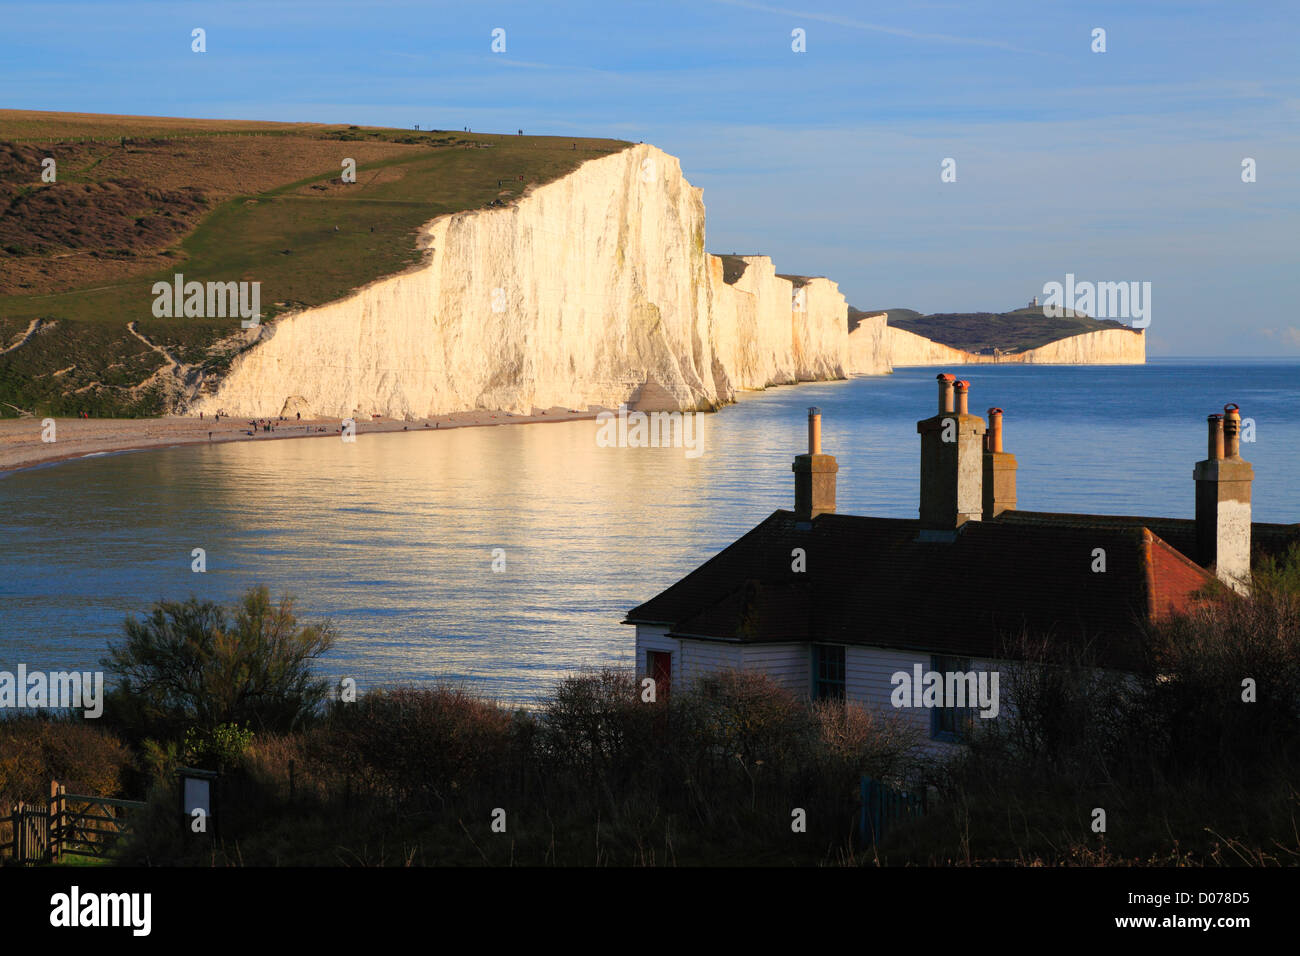 how to get to seven sisters cliffs